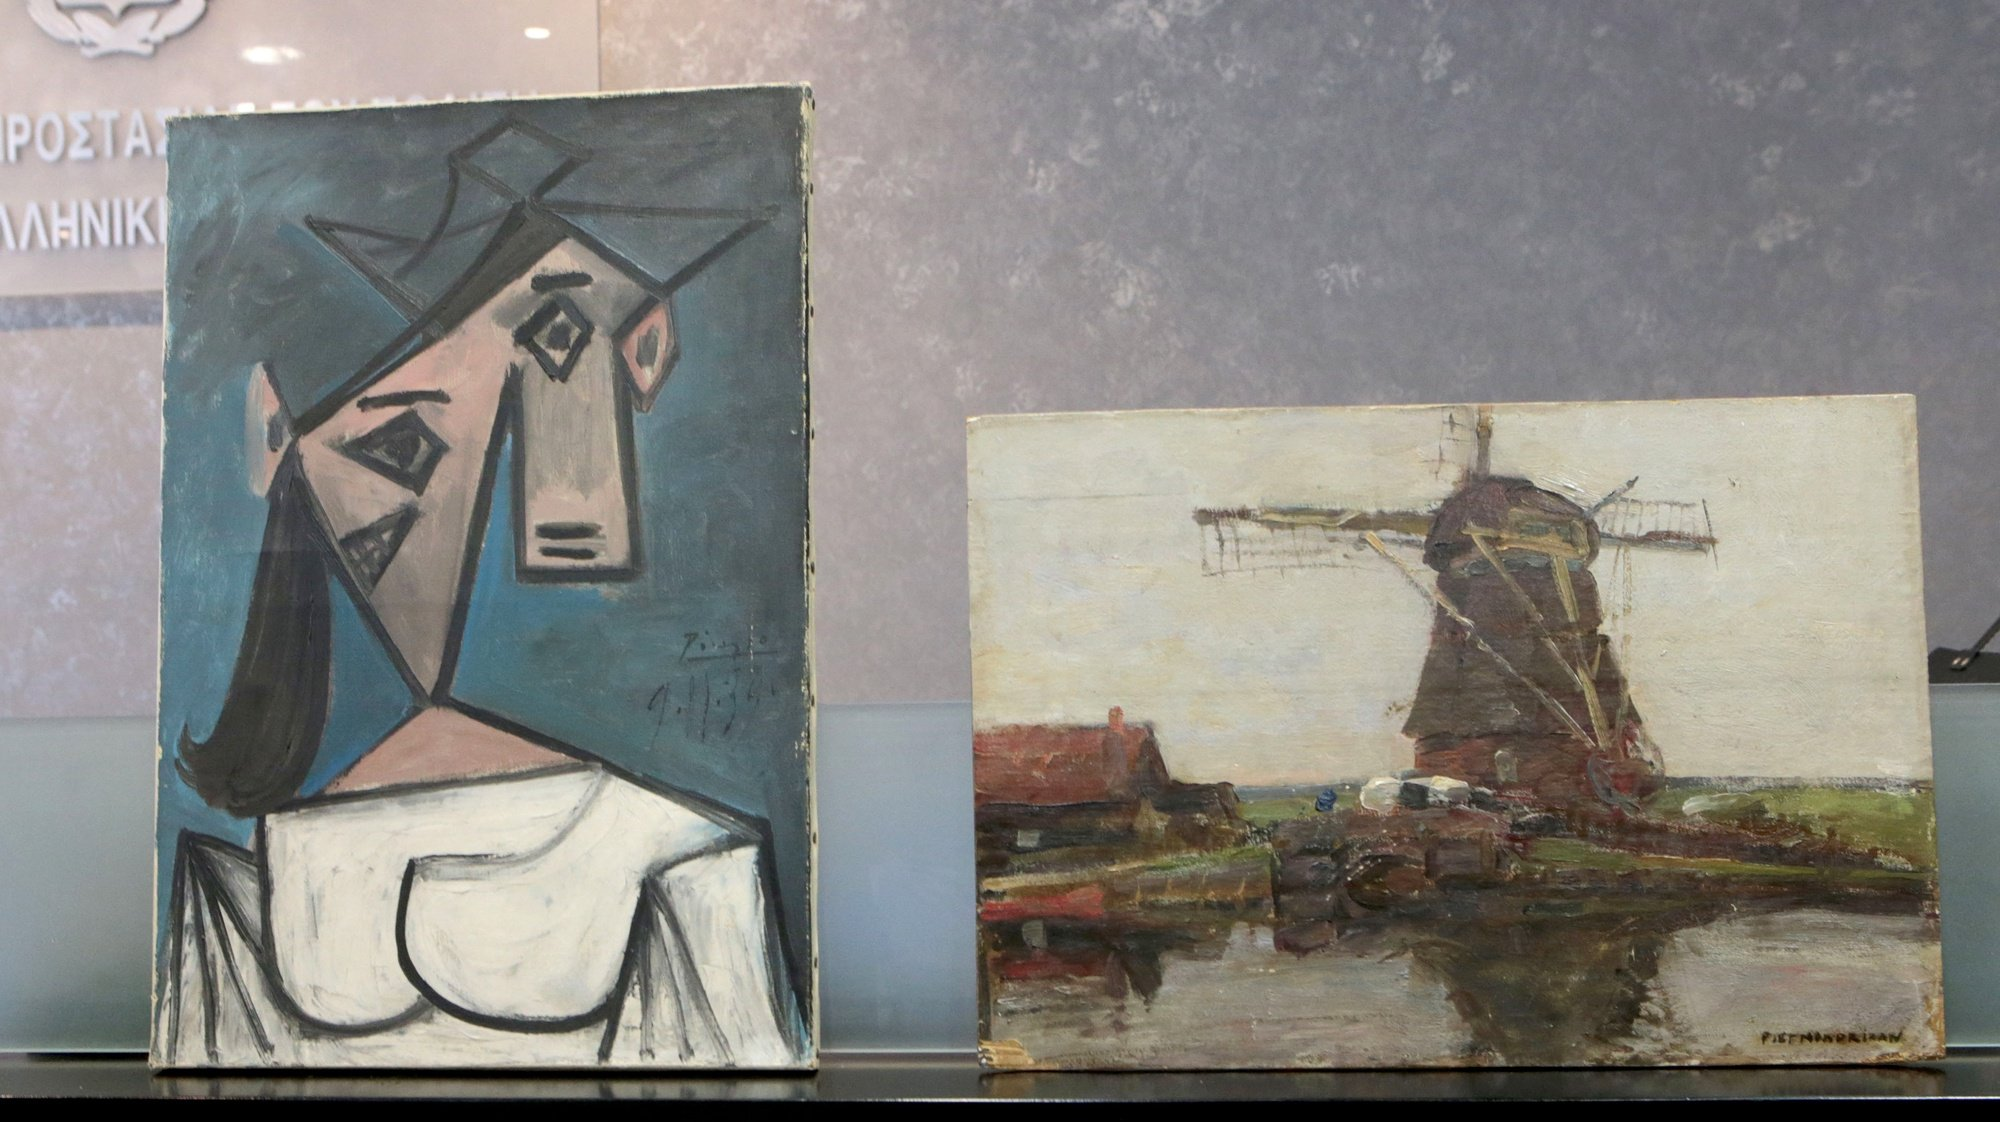 epa09310222 The stolen Picasso and Mondrian paintings, at a press conference, in Athens, Greece, 29 June 2021. The Greek police have recovered Pablo Picasso's 'Head of a Woman' and Piet Mondrian's 'Stammer Windmill', which had been stolen from the National Gallery in Athens in 2012. Police found the two paintings hidden in a gorge in Keratea, east Attica on Monday 28 June 2021. A 49-year-old man has been arrested.The perpetrators also removed an early 17th-century sketch attributed to the Italian Mannerist artist Guglielmo Caccia.  EPA/PANTELIS-SAITAS